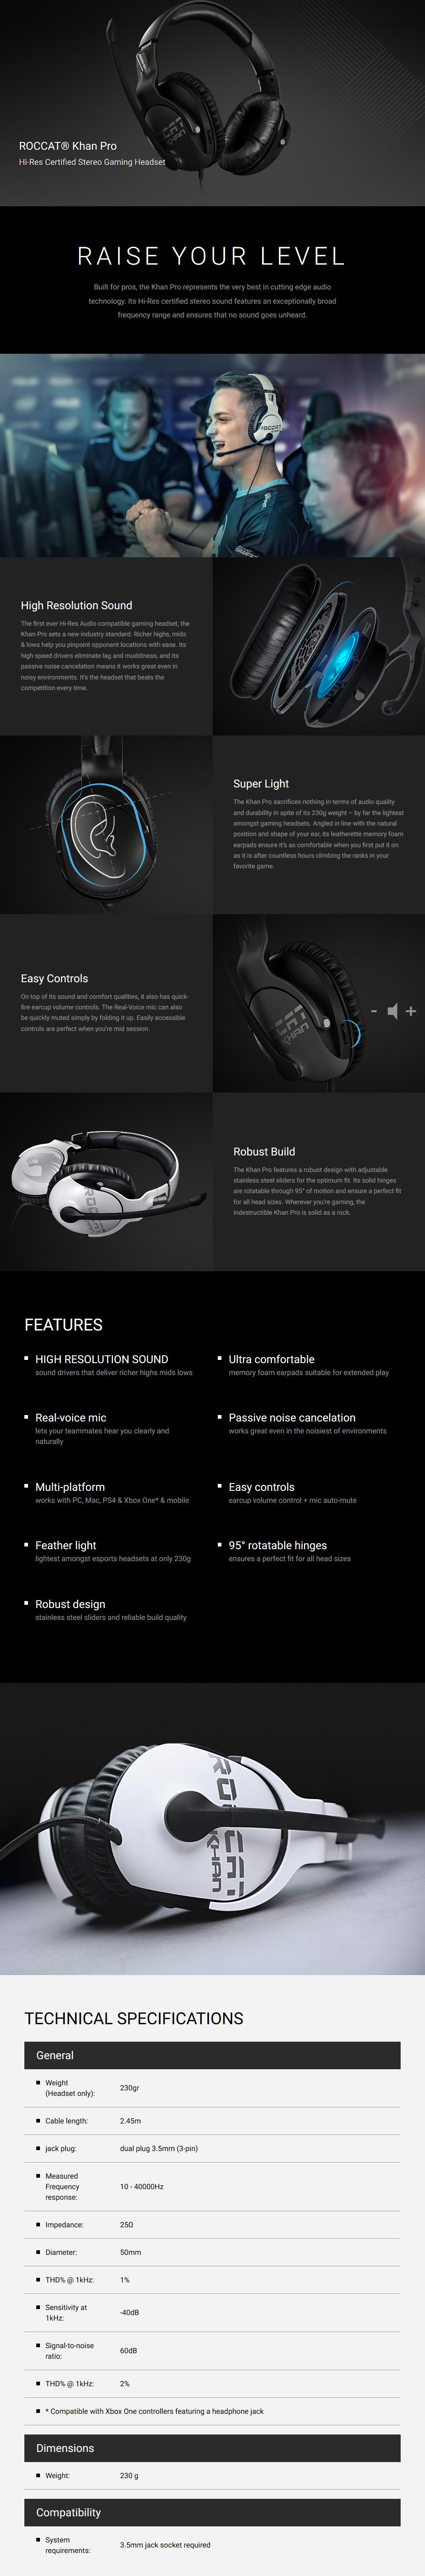 Roccat Khan Pro Competitive Gaming Headset - Grey - Desktop Overview 1